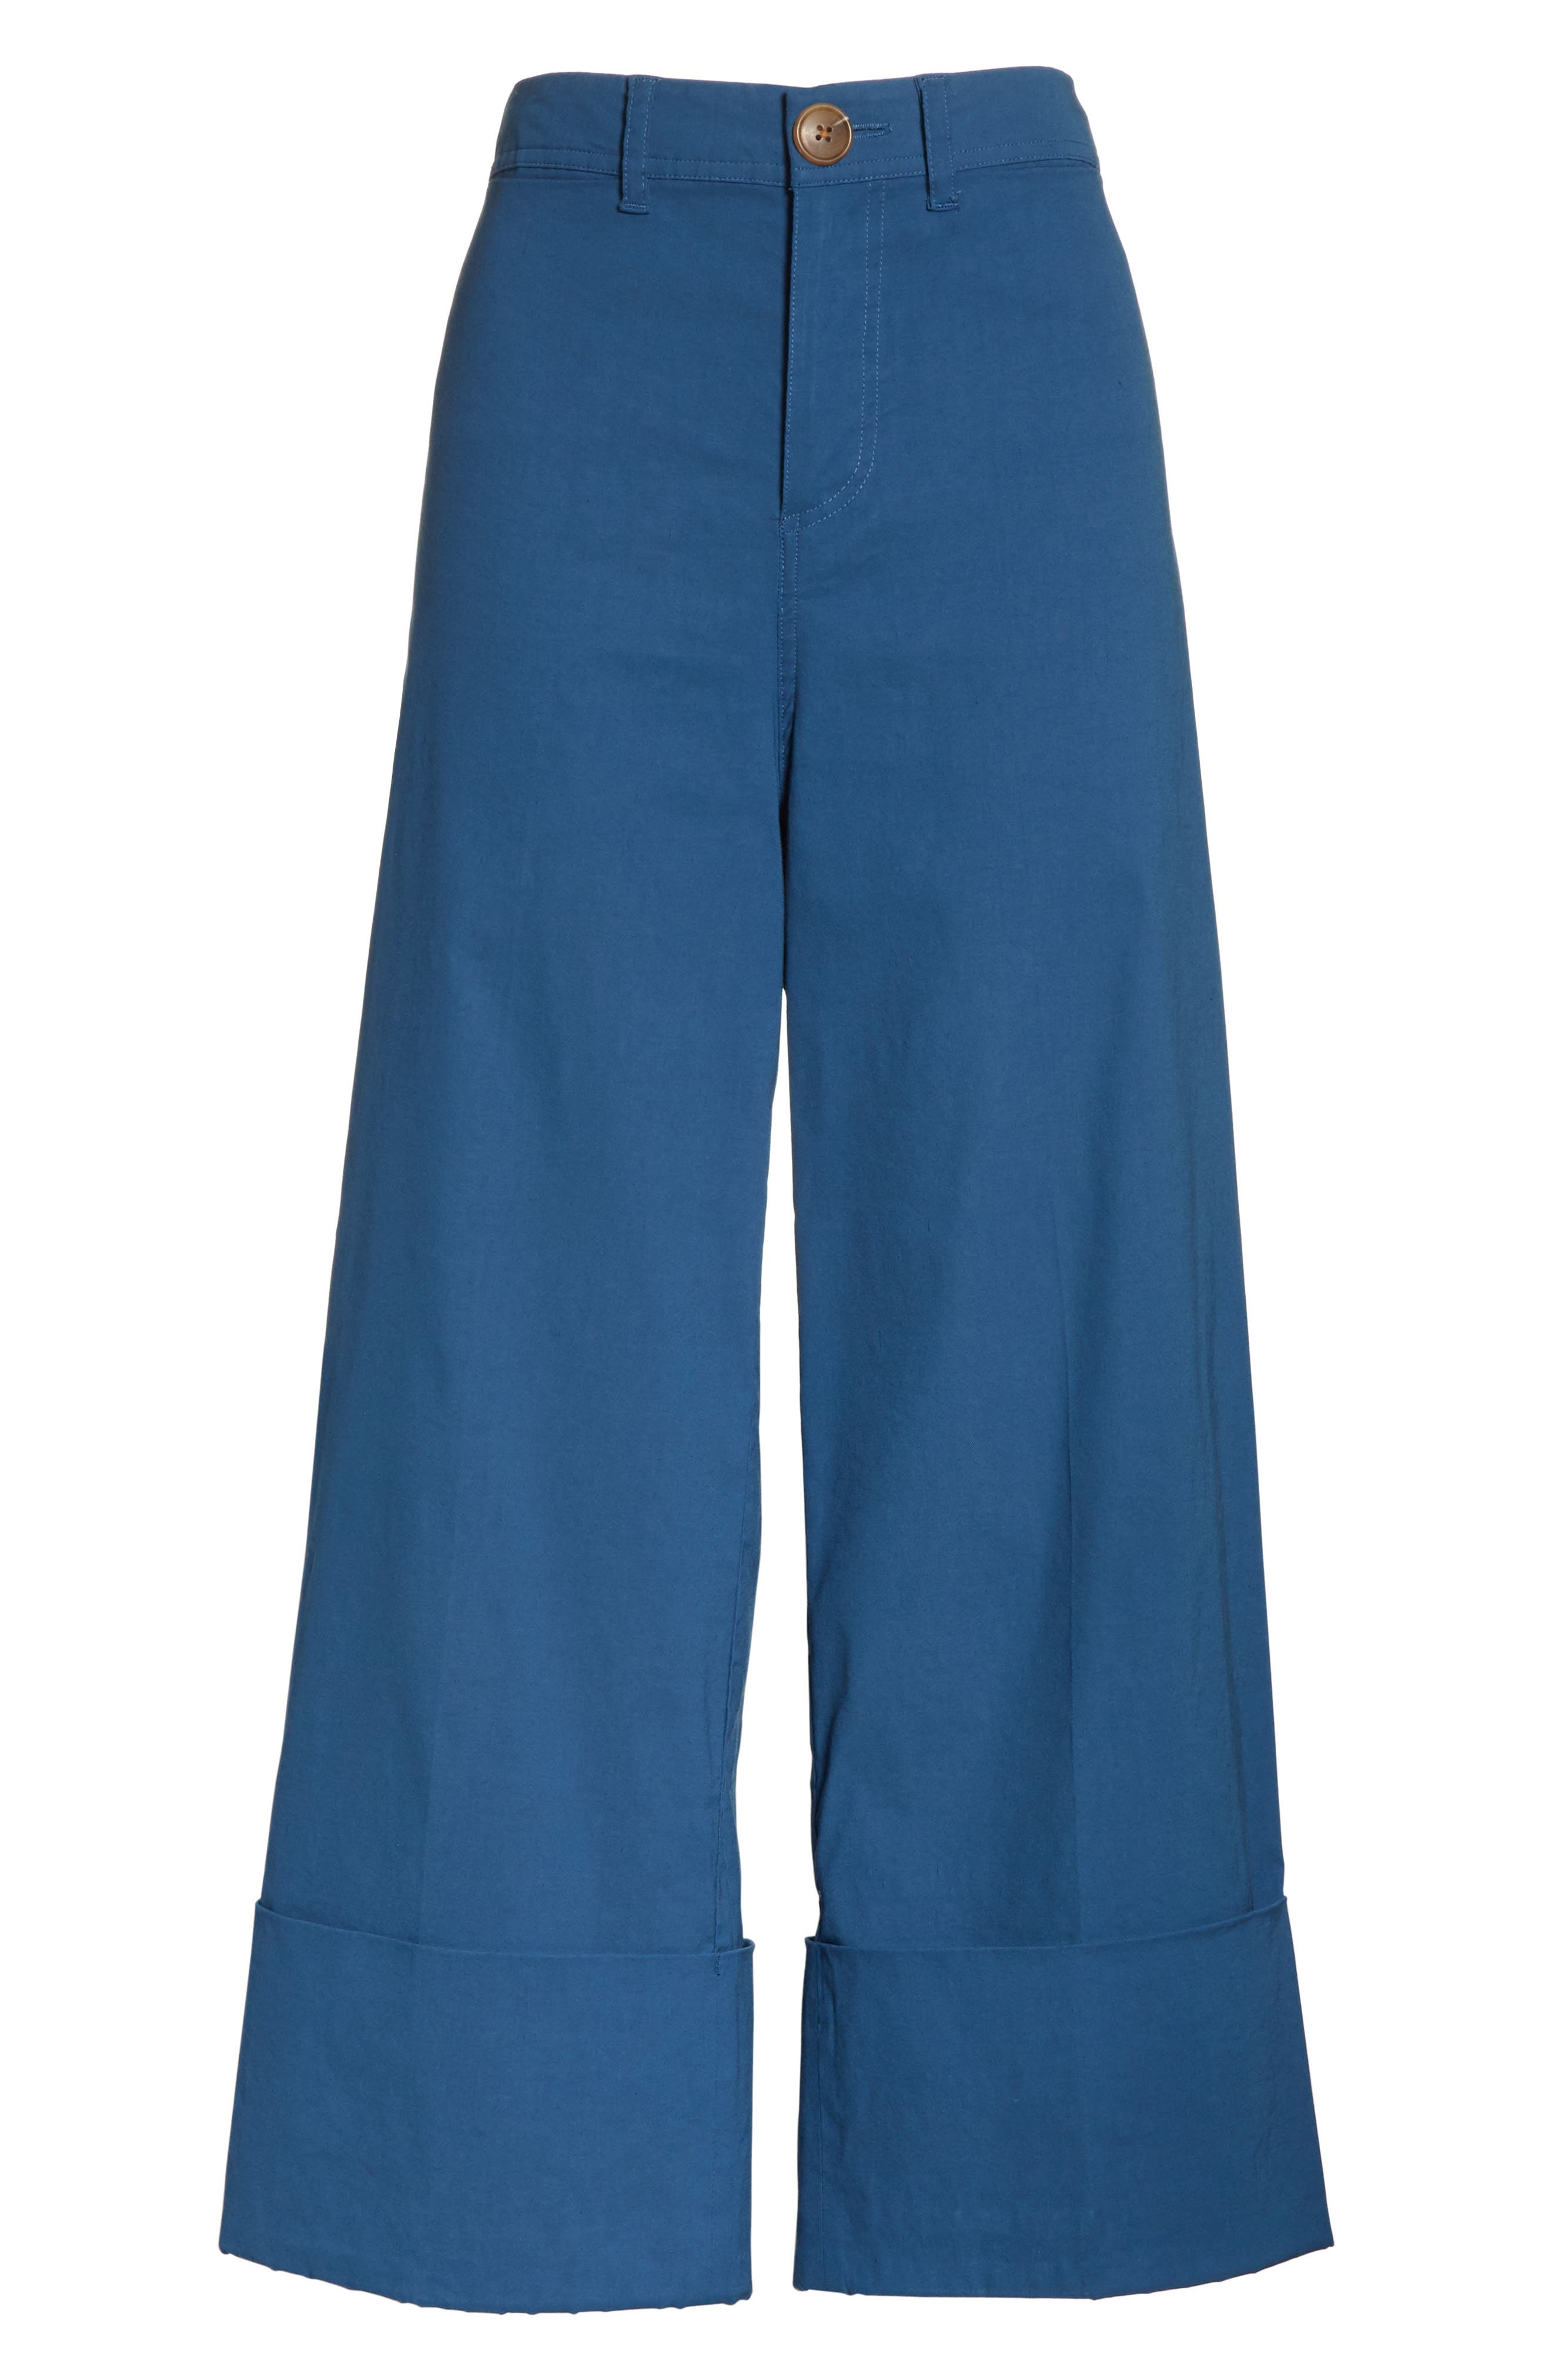 Winona Cuff Wide Leg Pants,                             Alternate thumbnail 6, color,                             400